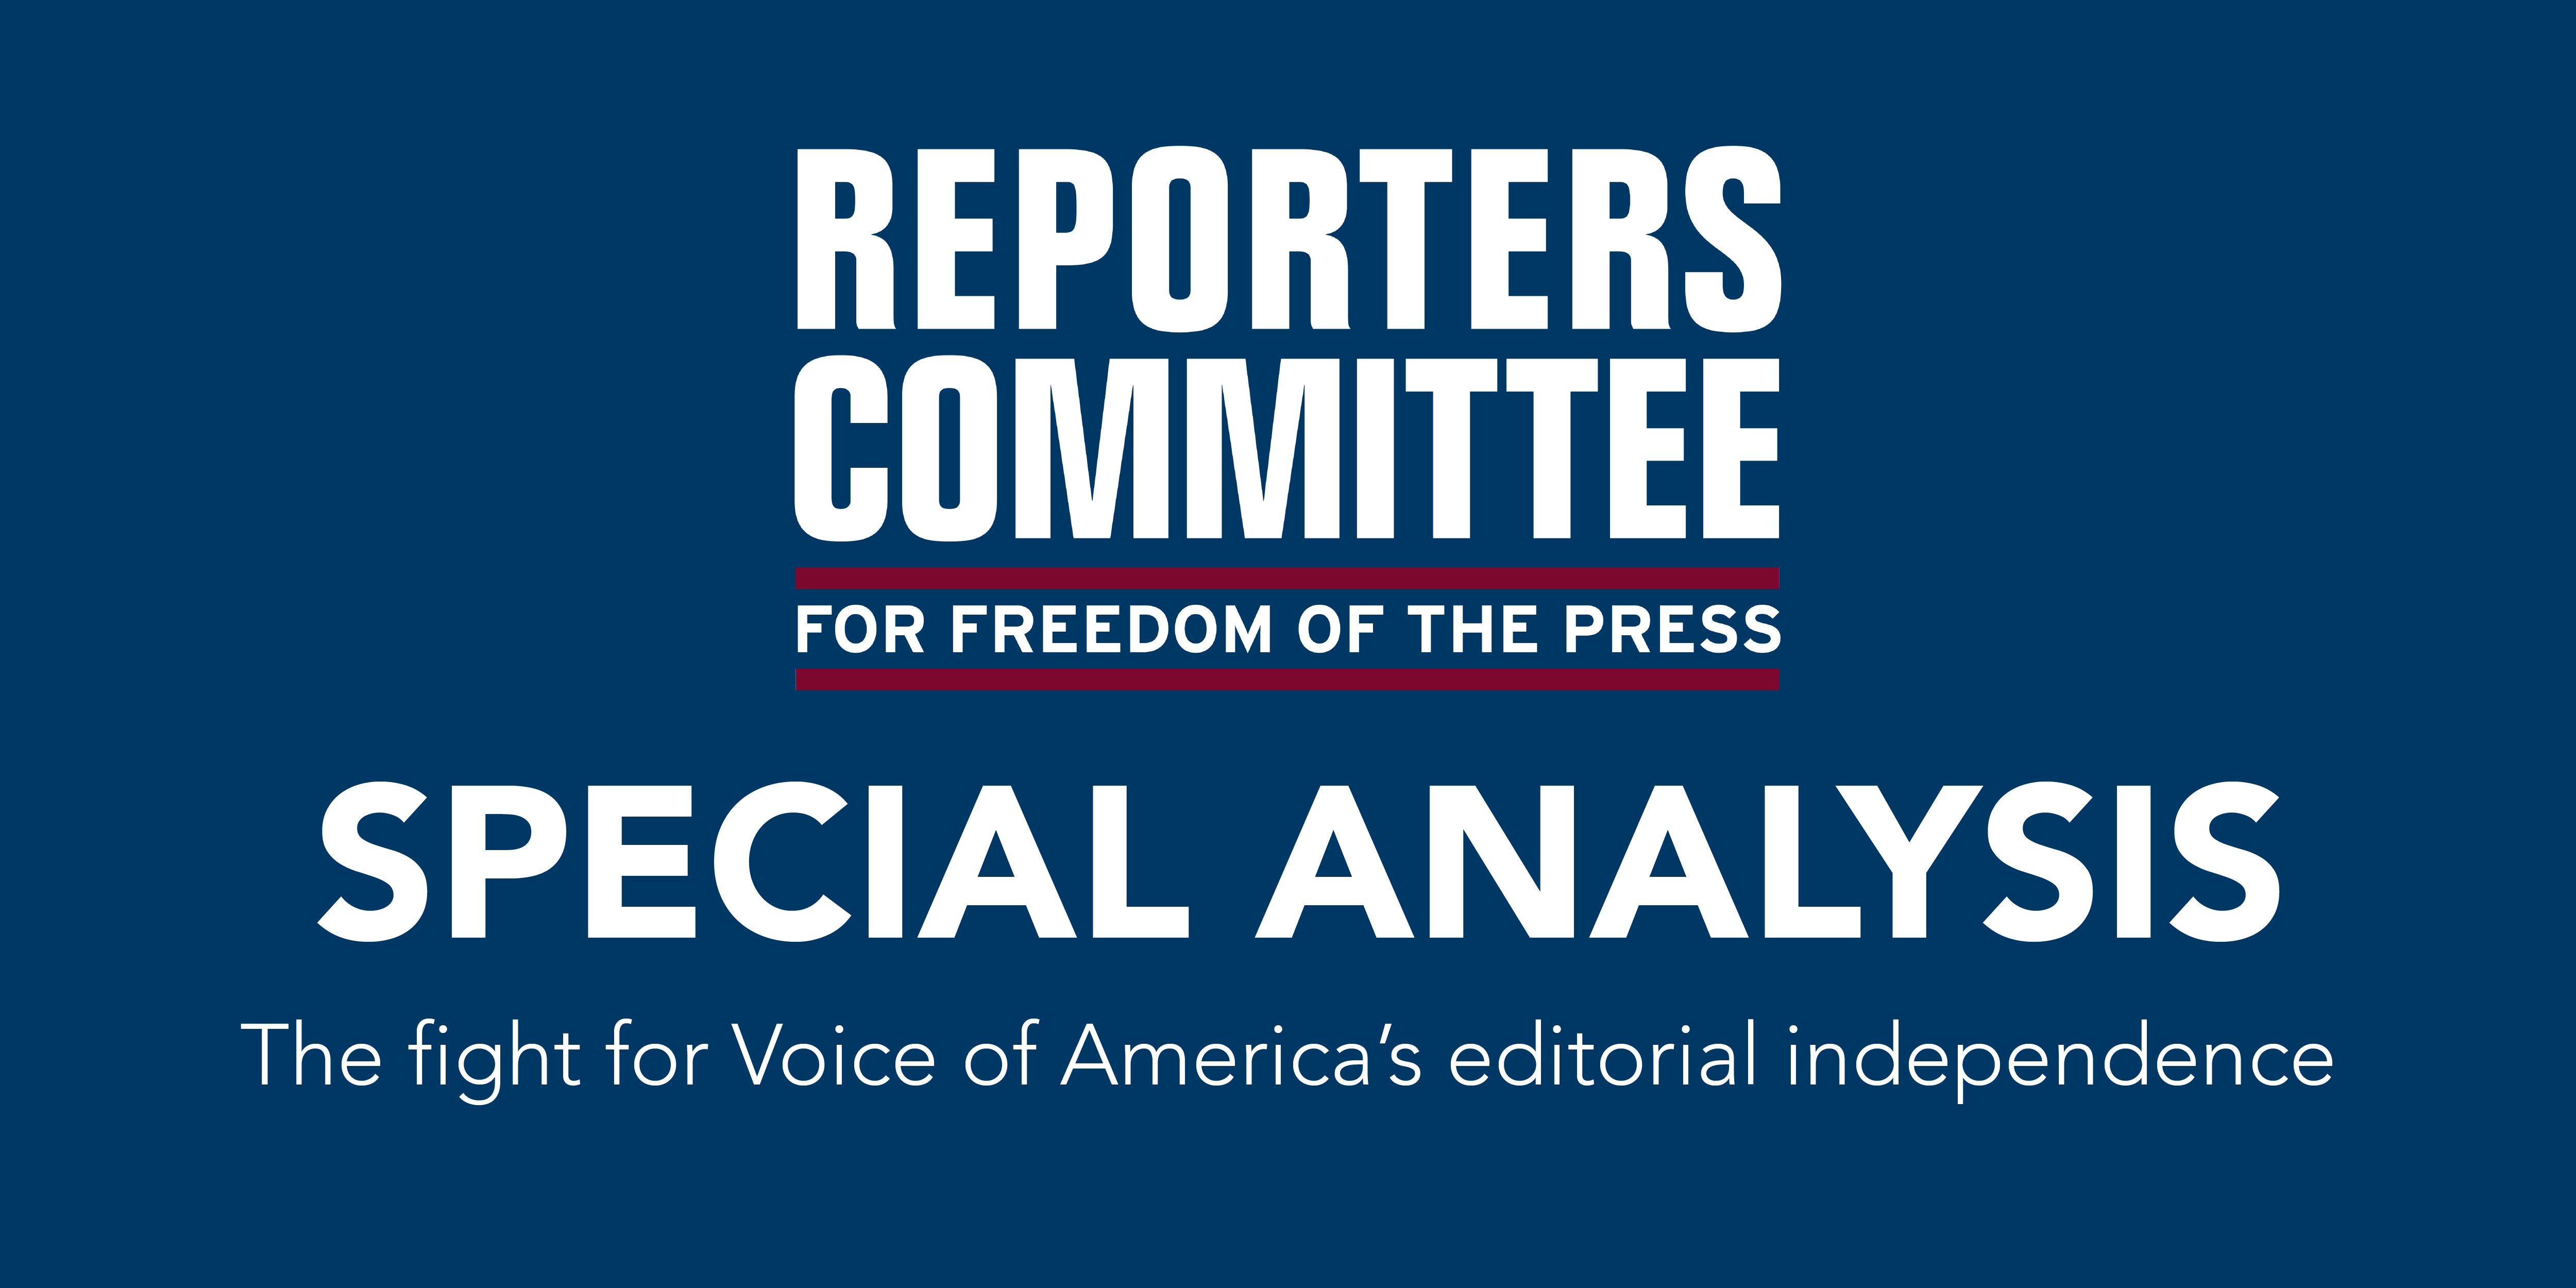 Special Analysis card: The fight for Voice of America's editorial independence